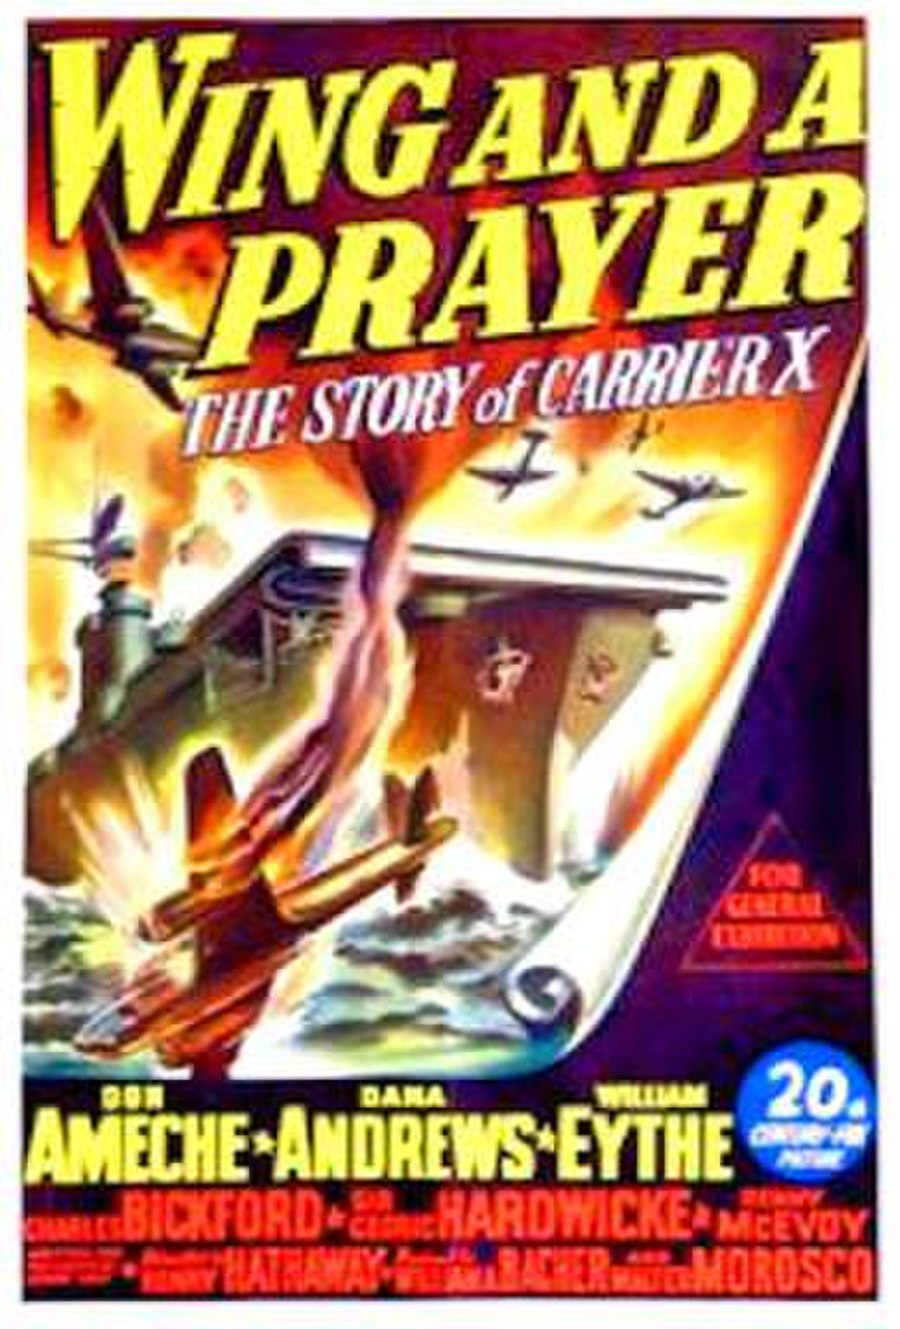 Wing and a Prayer, The Story of Carrier X